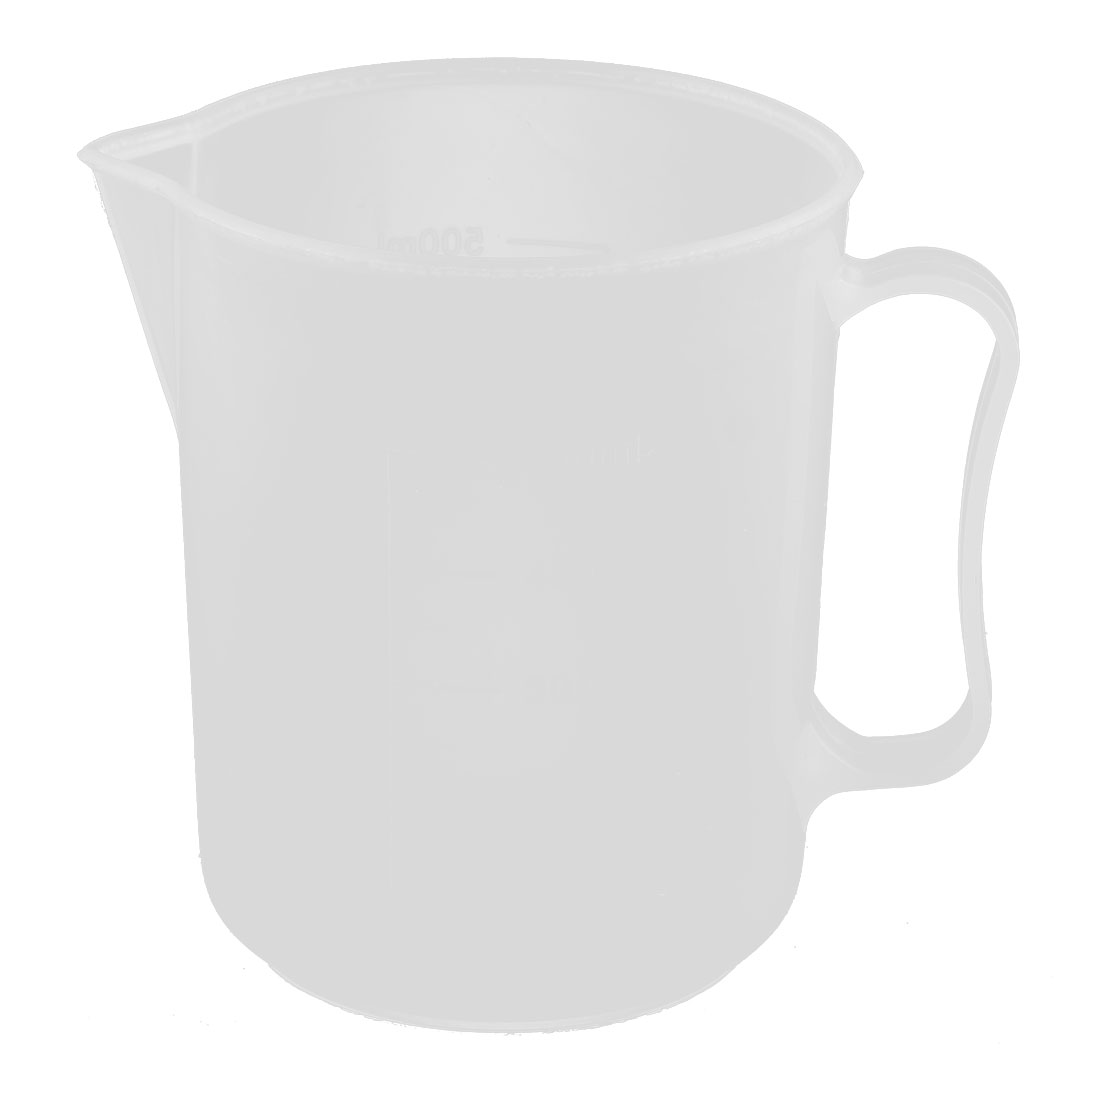 Lab Kitchen Plastic Water Liquid Graduated Measuring Cup Clear White 500ml by Unique-Bargains